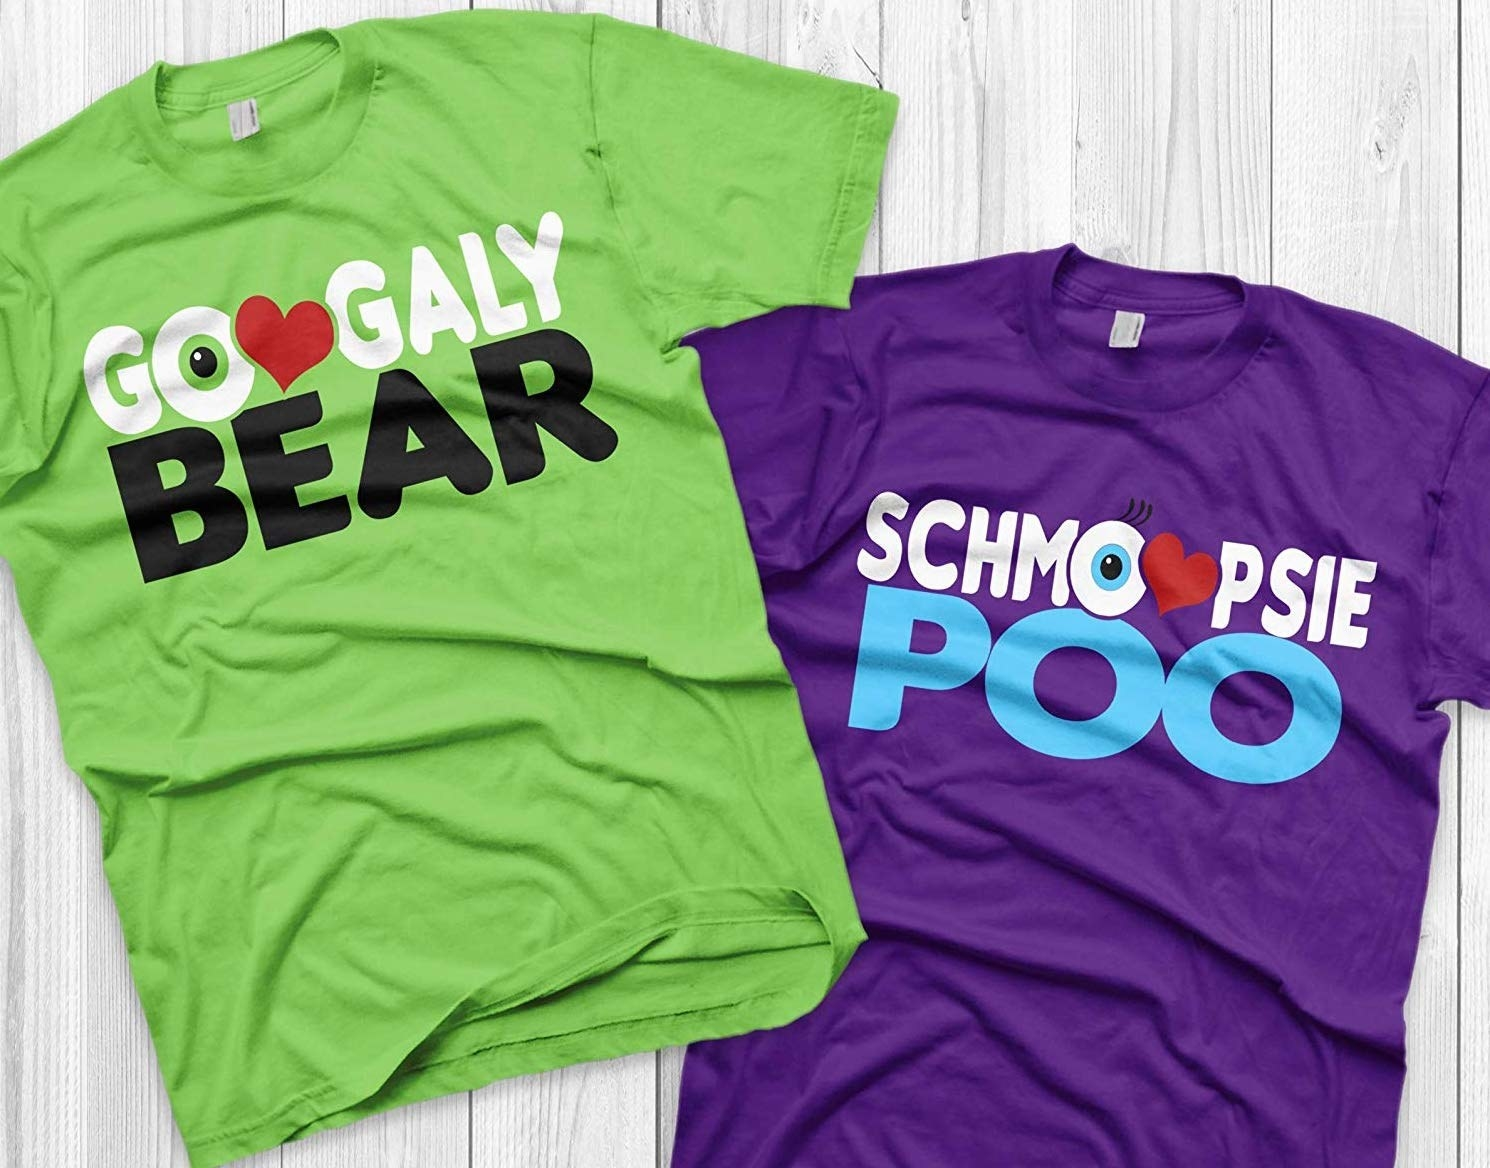 "to the left is a green T-shirt that says ""googaly bear"" with the second O as a heart, to the right is a purple T-shirt that says ""schmoopsie poo"" with the second O as a heart"